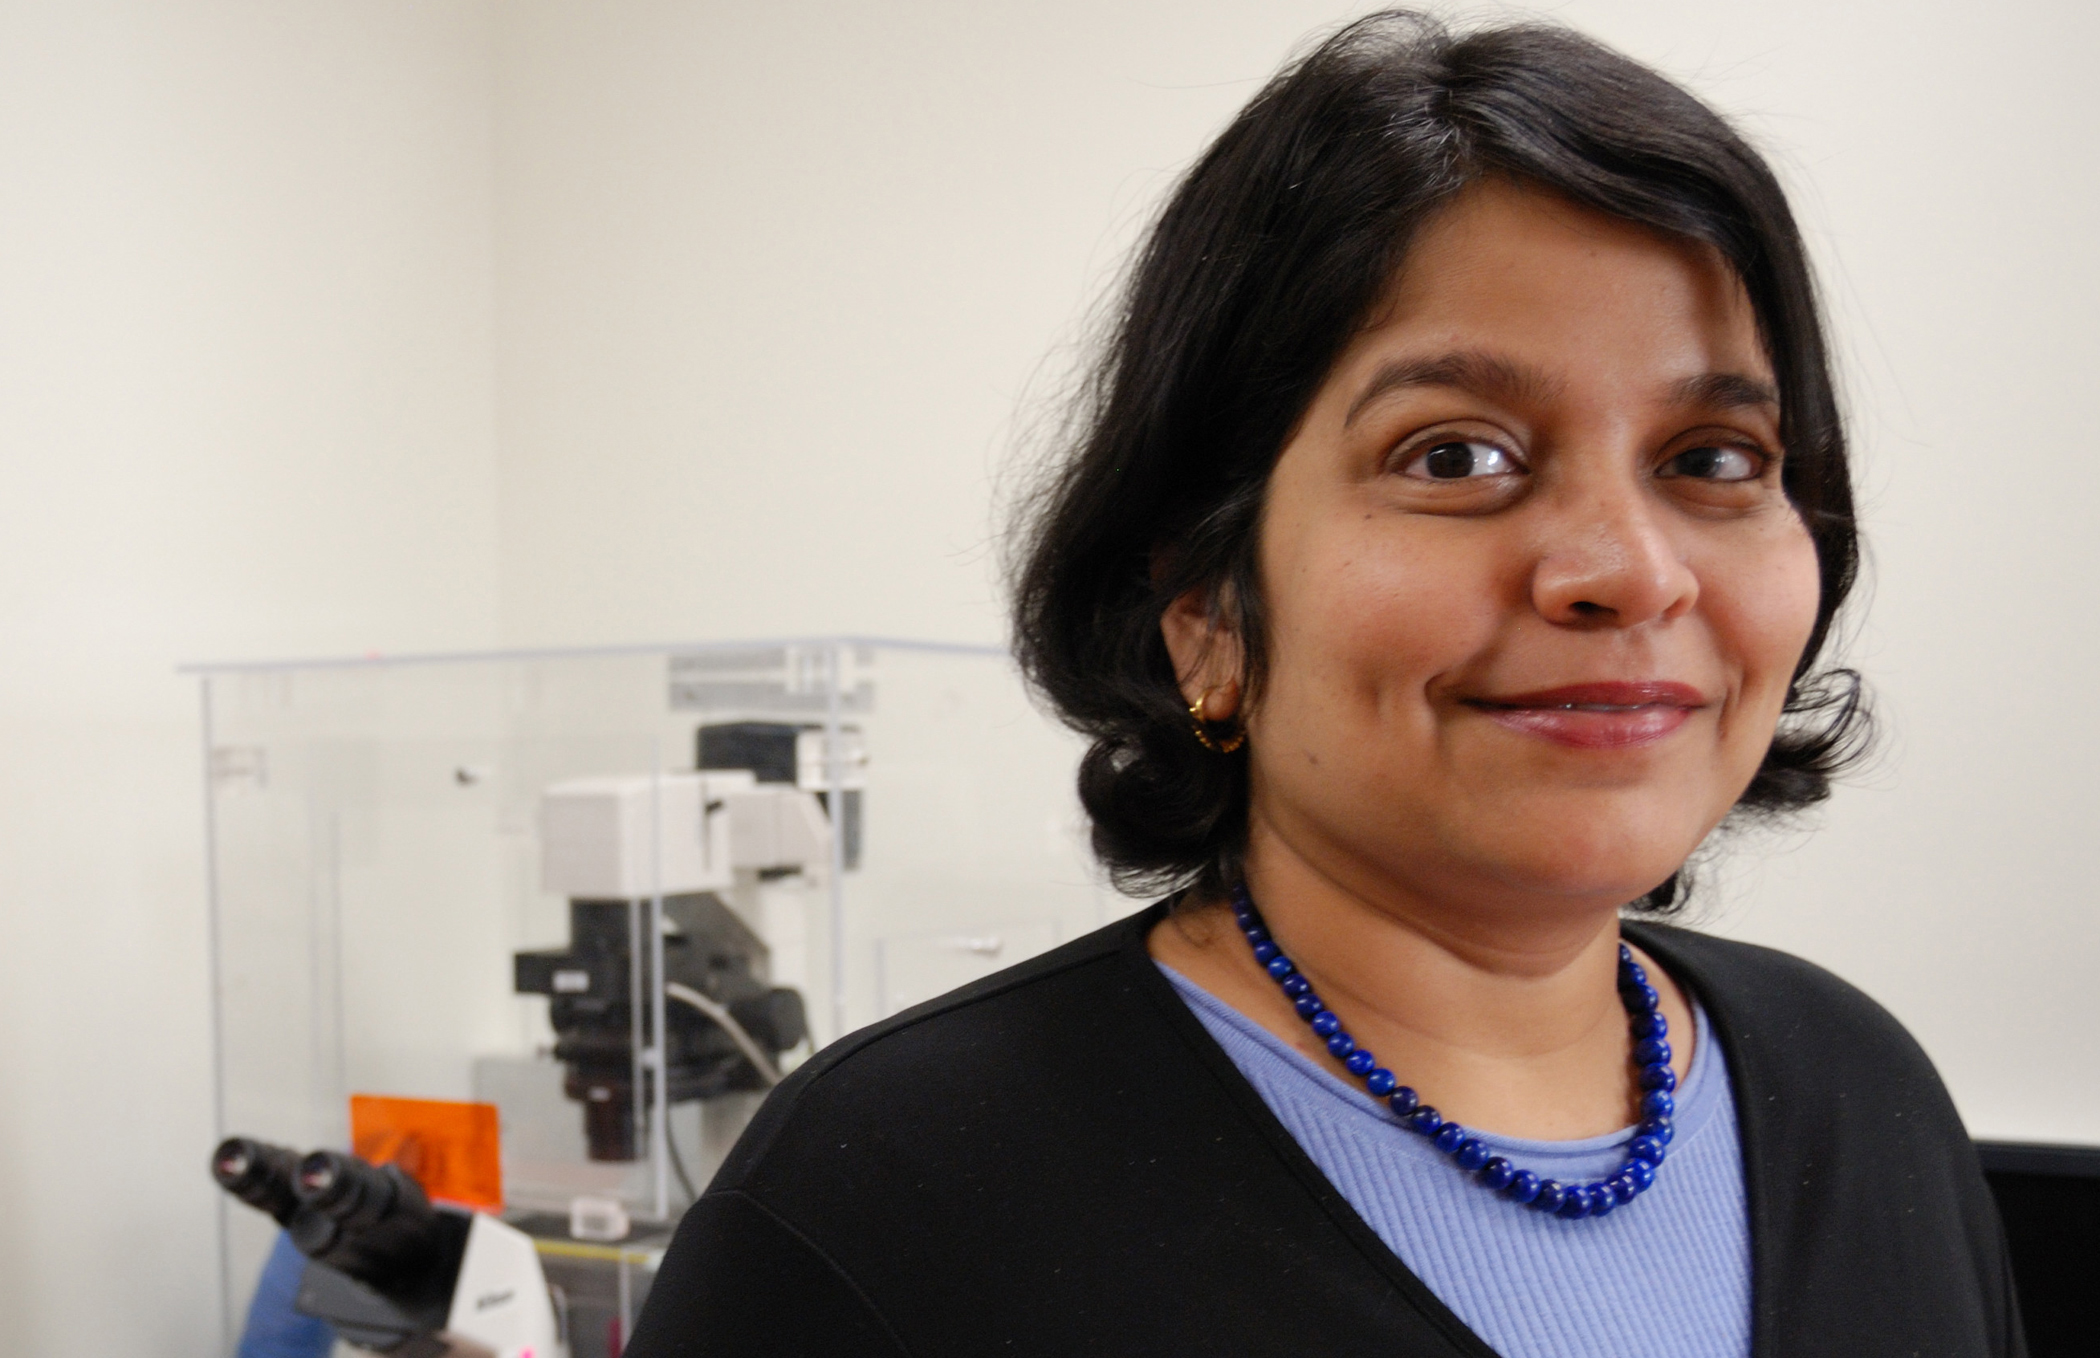 Padma Rajagopalan, an assistant professor in the department of chemical engineering, has won a National Science Foundation CAREER grant of $451,379 to understand the locomotion or migration of cells under complex environments and in the presence of conflicting stimuli.